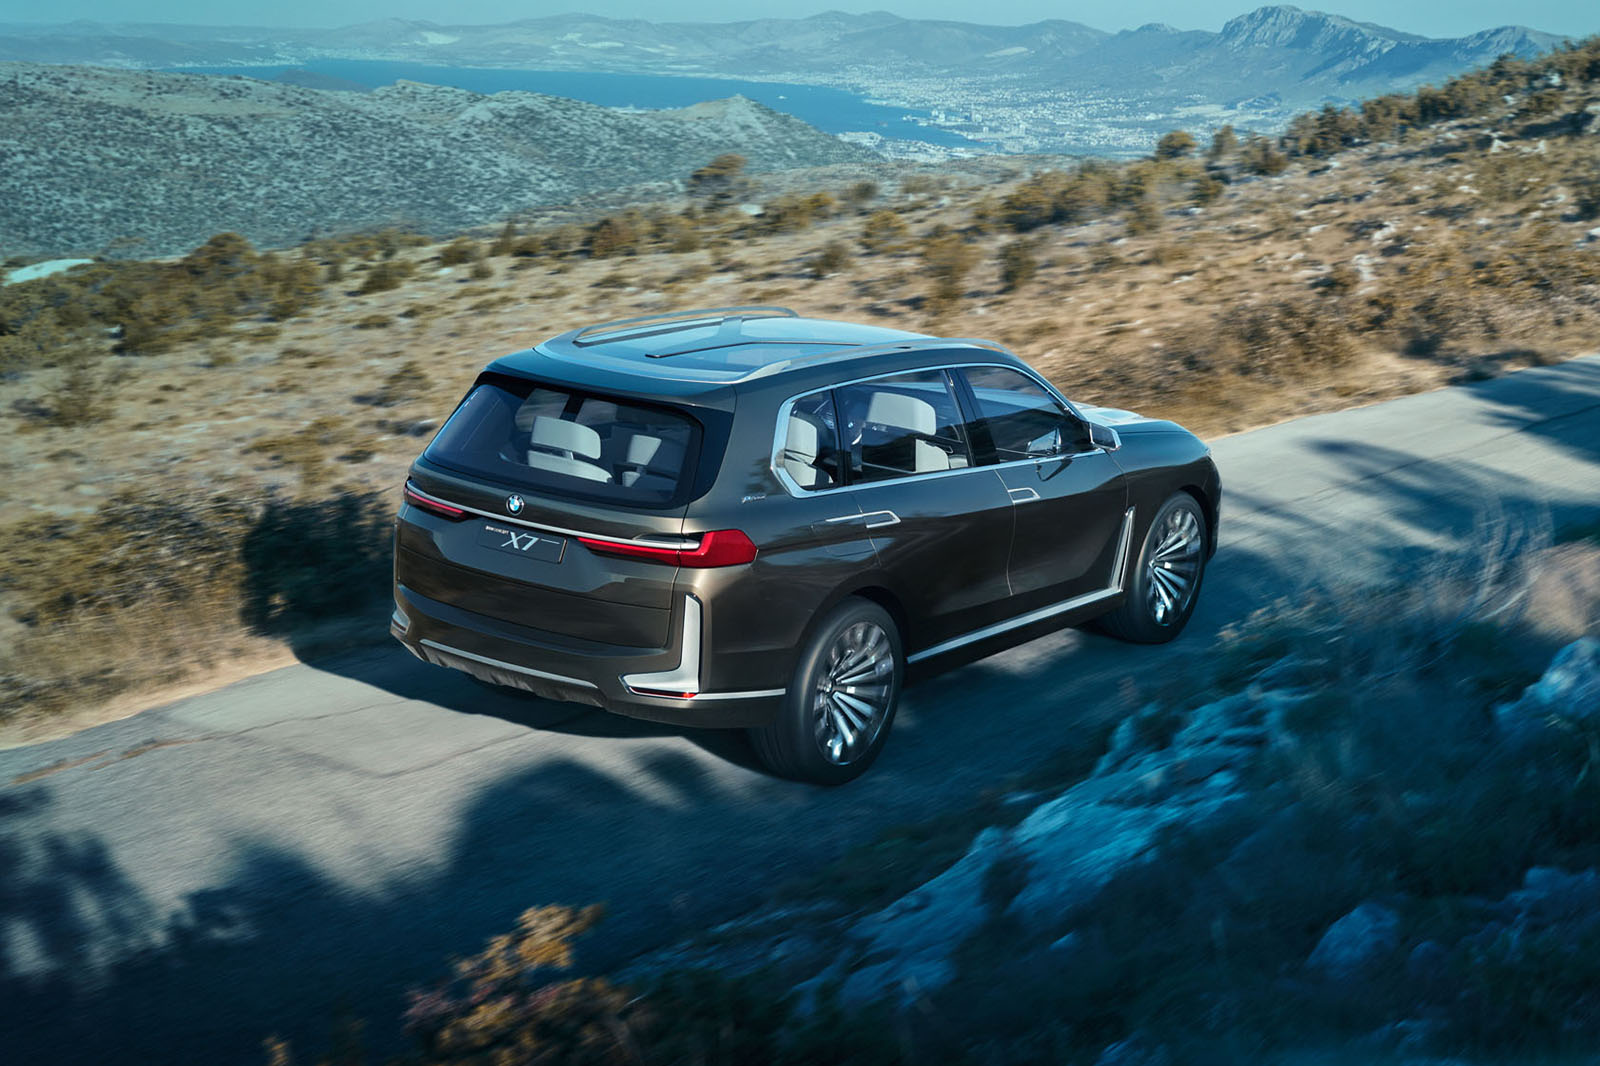 BMW Concept X7 iPerformance previews range-topping SUV ...